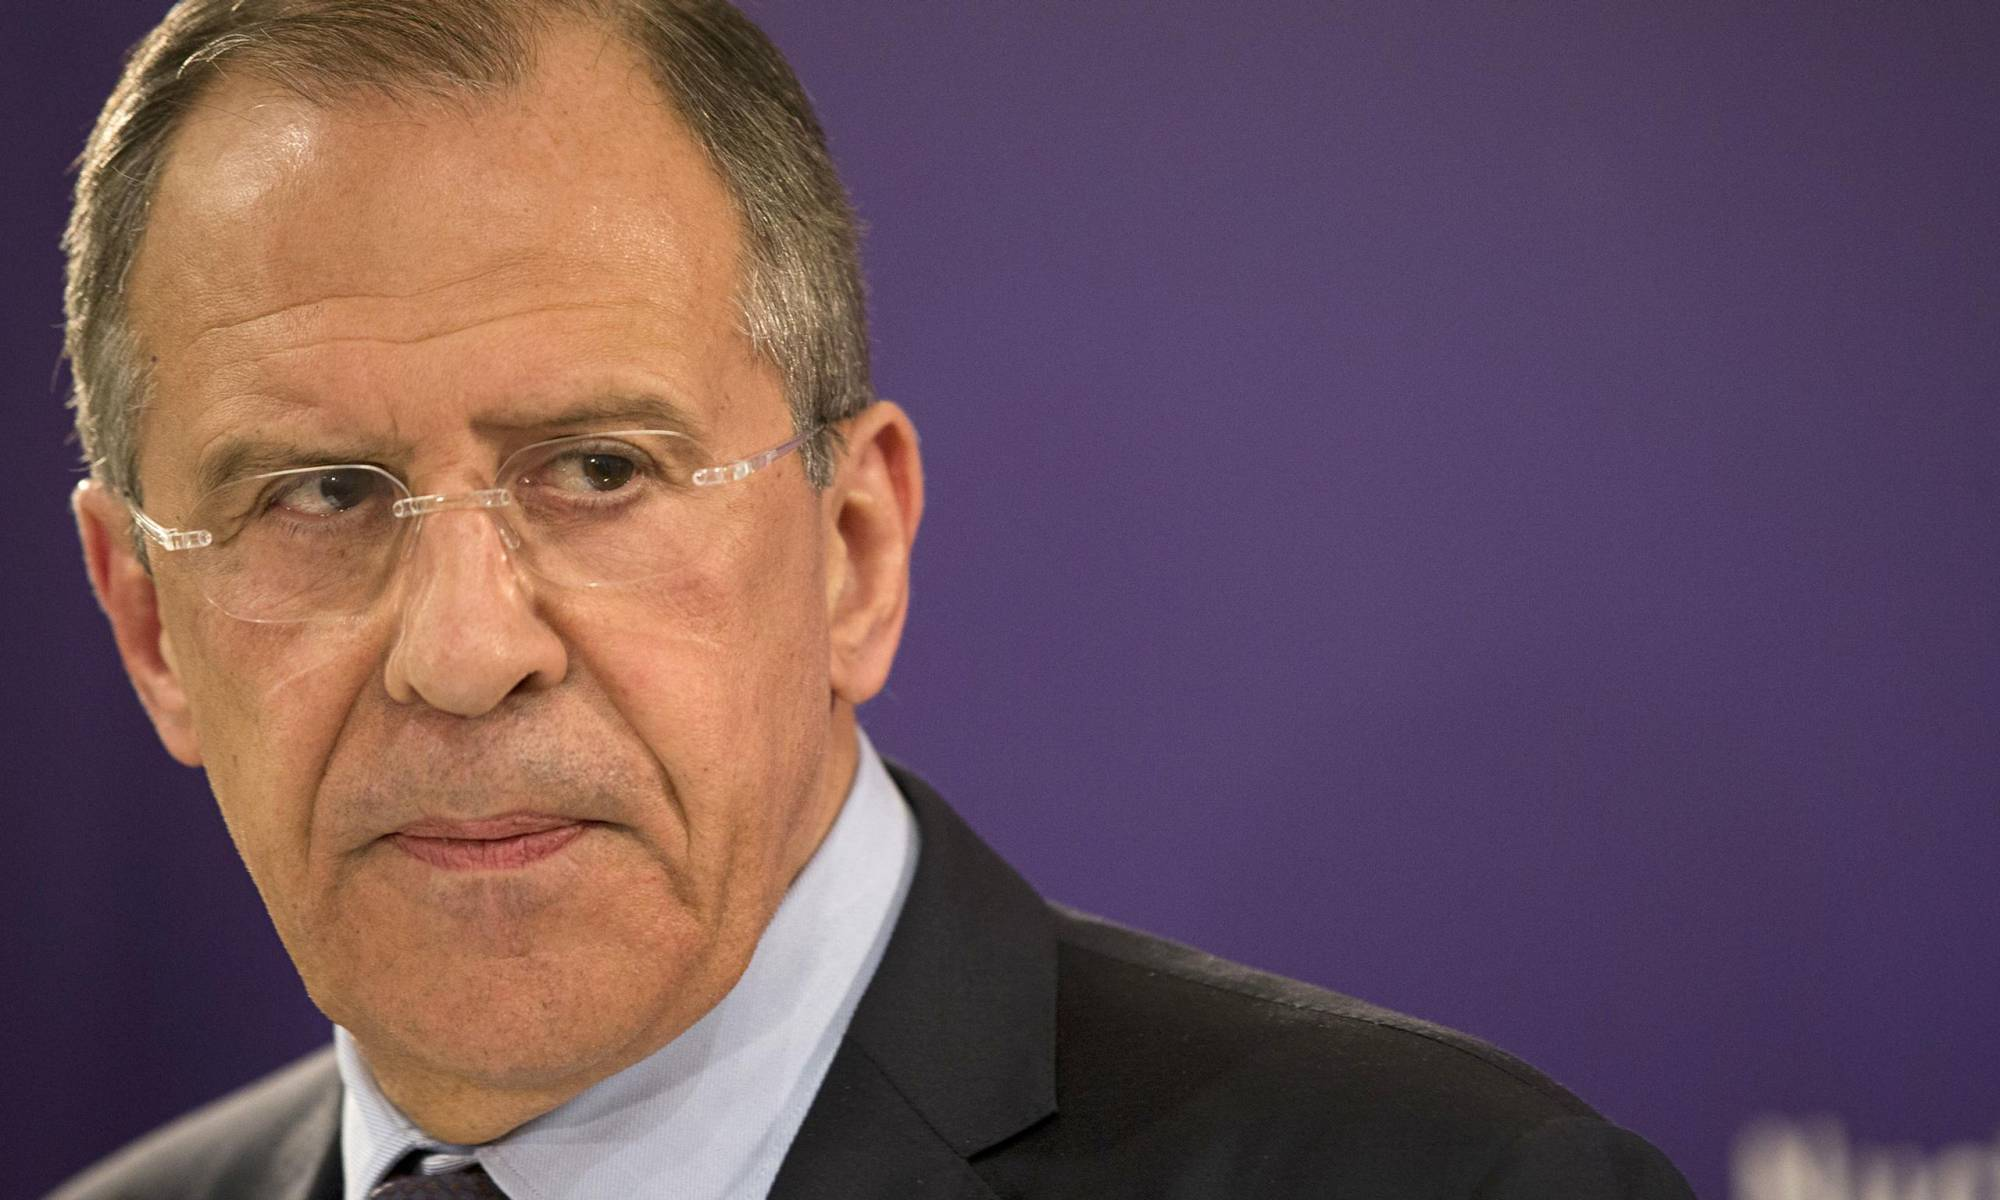 Russia's Had Enough: No More 'Business as Usual' With US